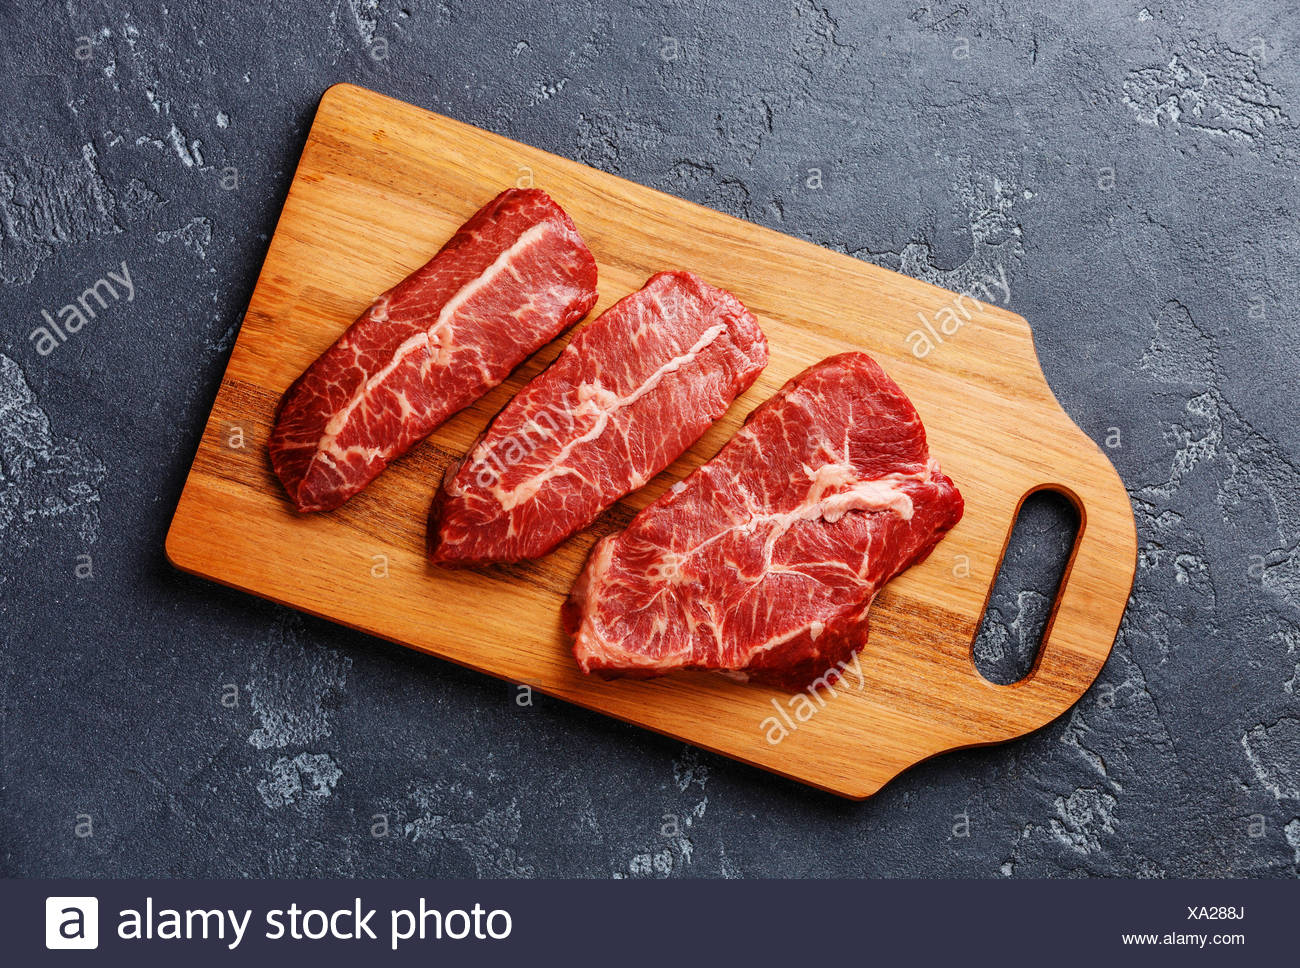 top blade steak raw stock photos top blade steak raw stock images alamy. Black Bedroom Furniture Sets. Home Design Ideas